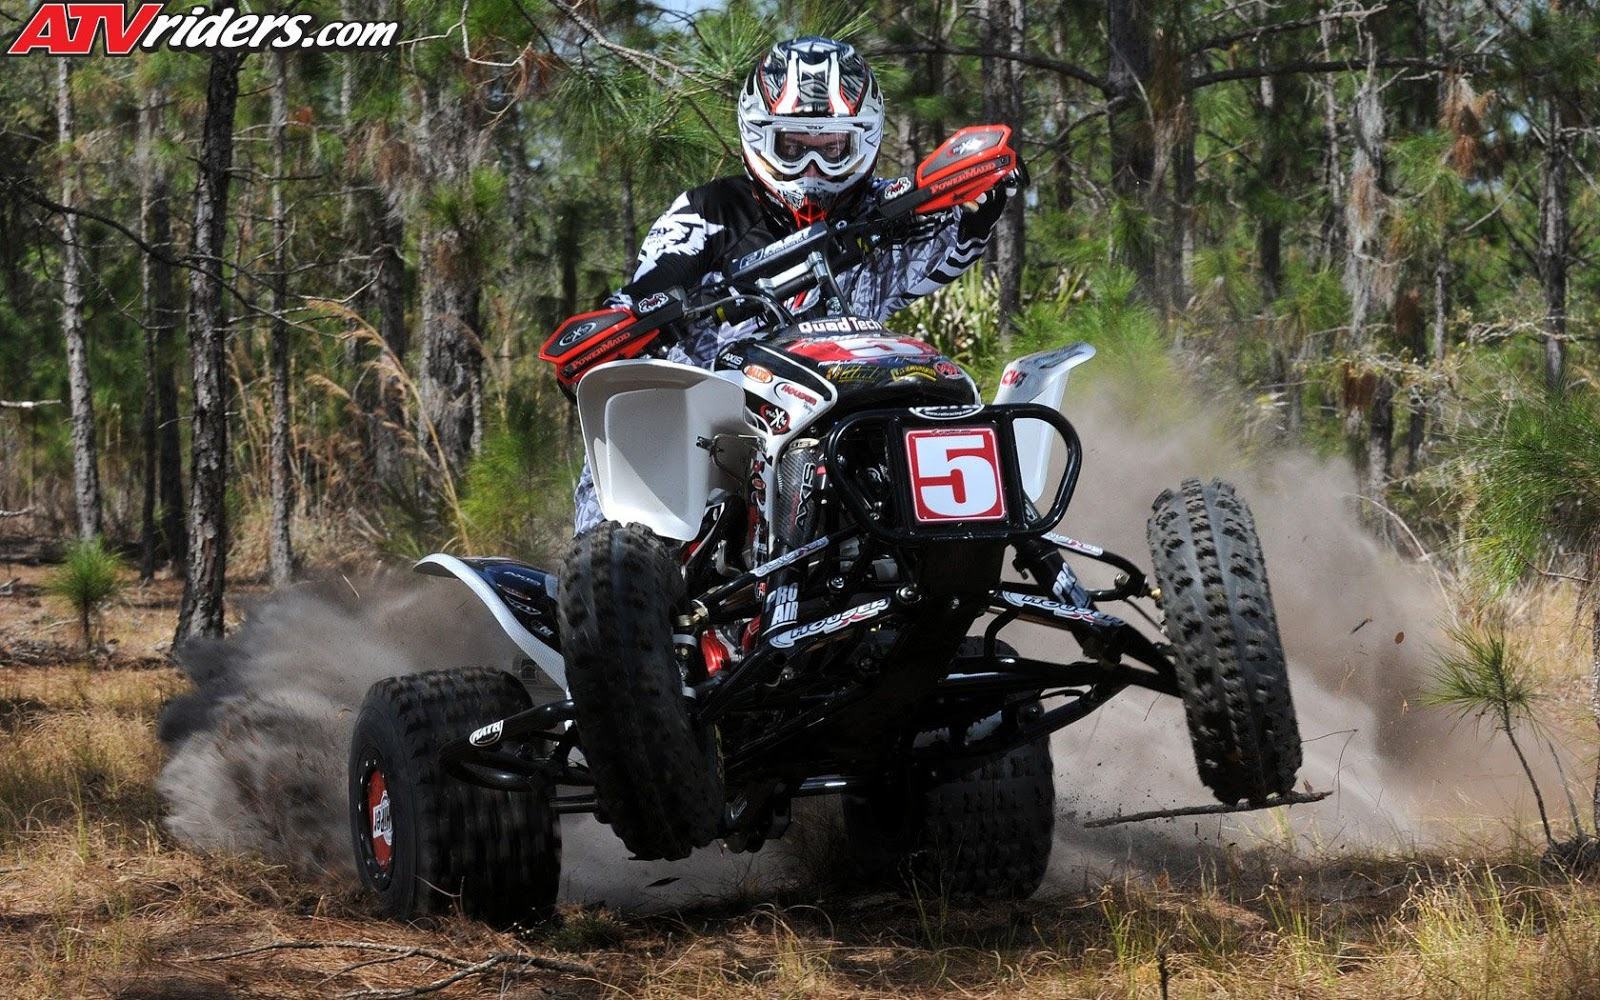 Free Download For Atv Wallpapers Atv Wallpapers